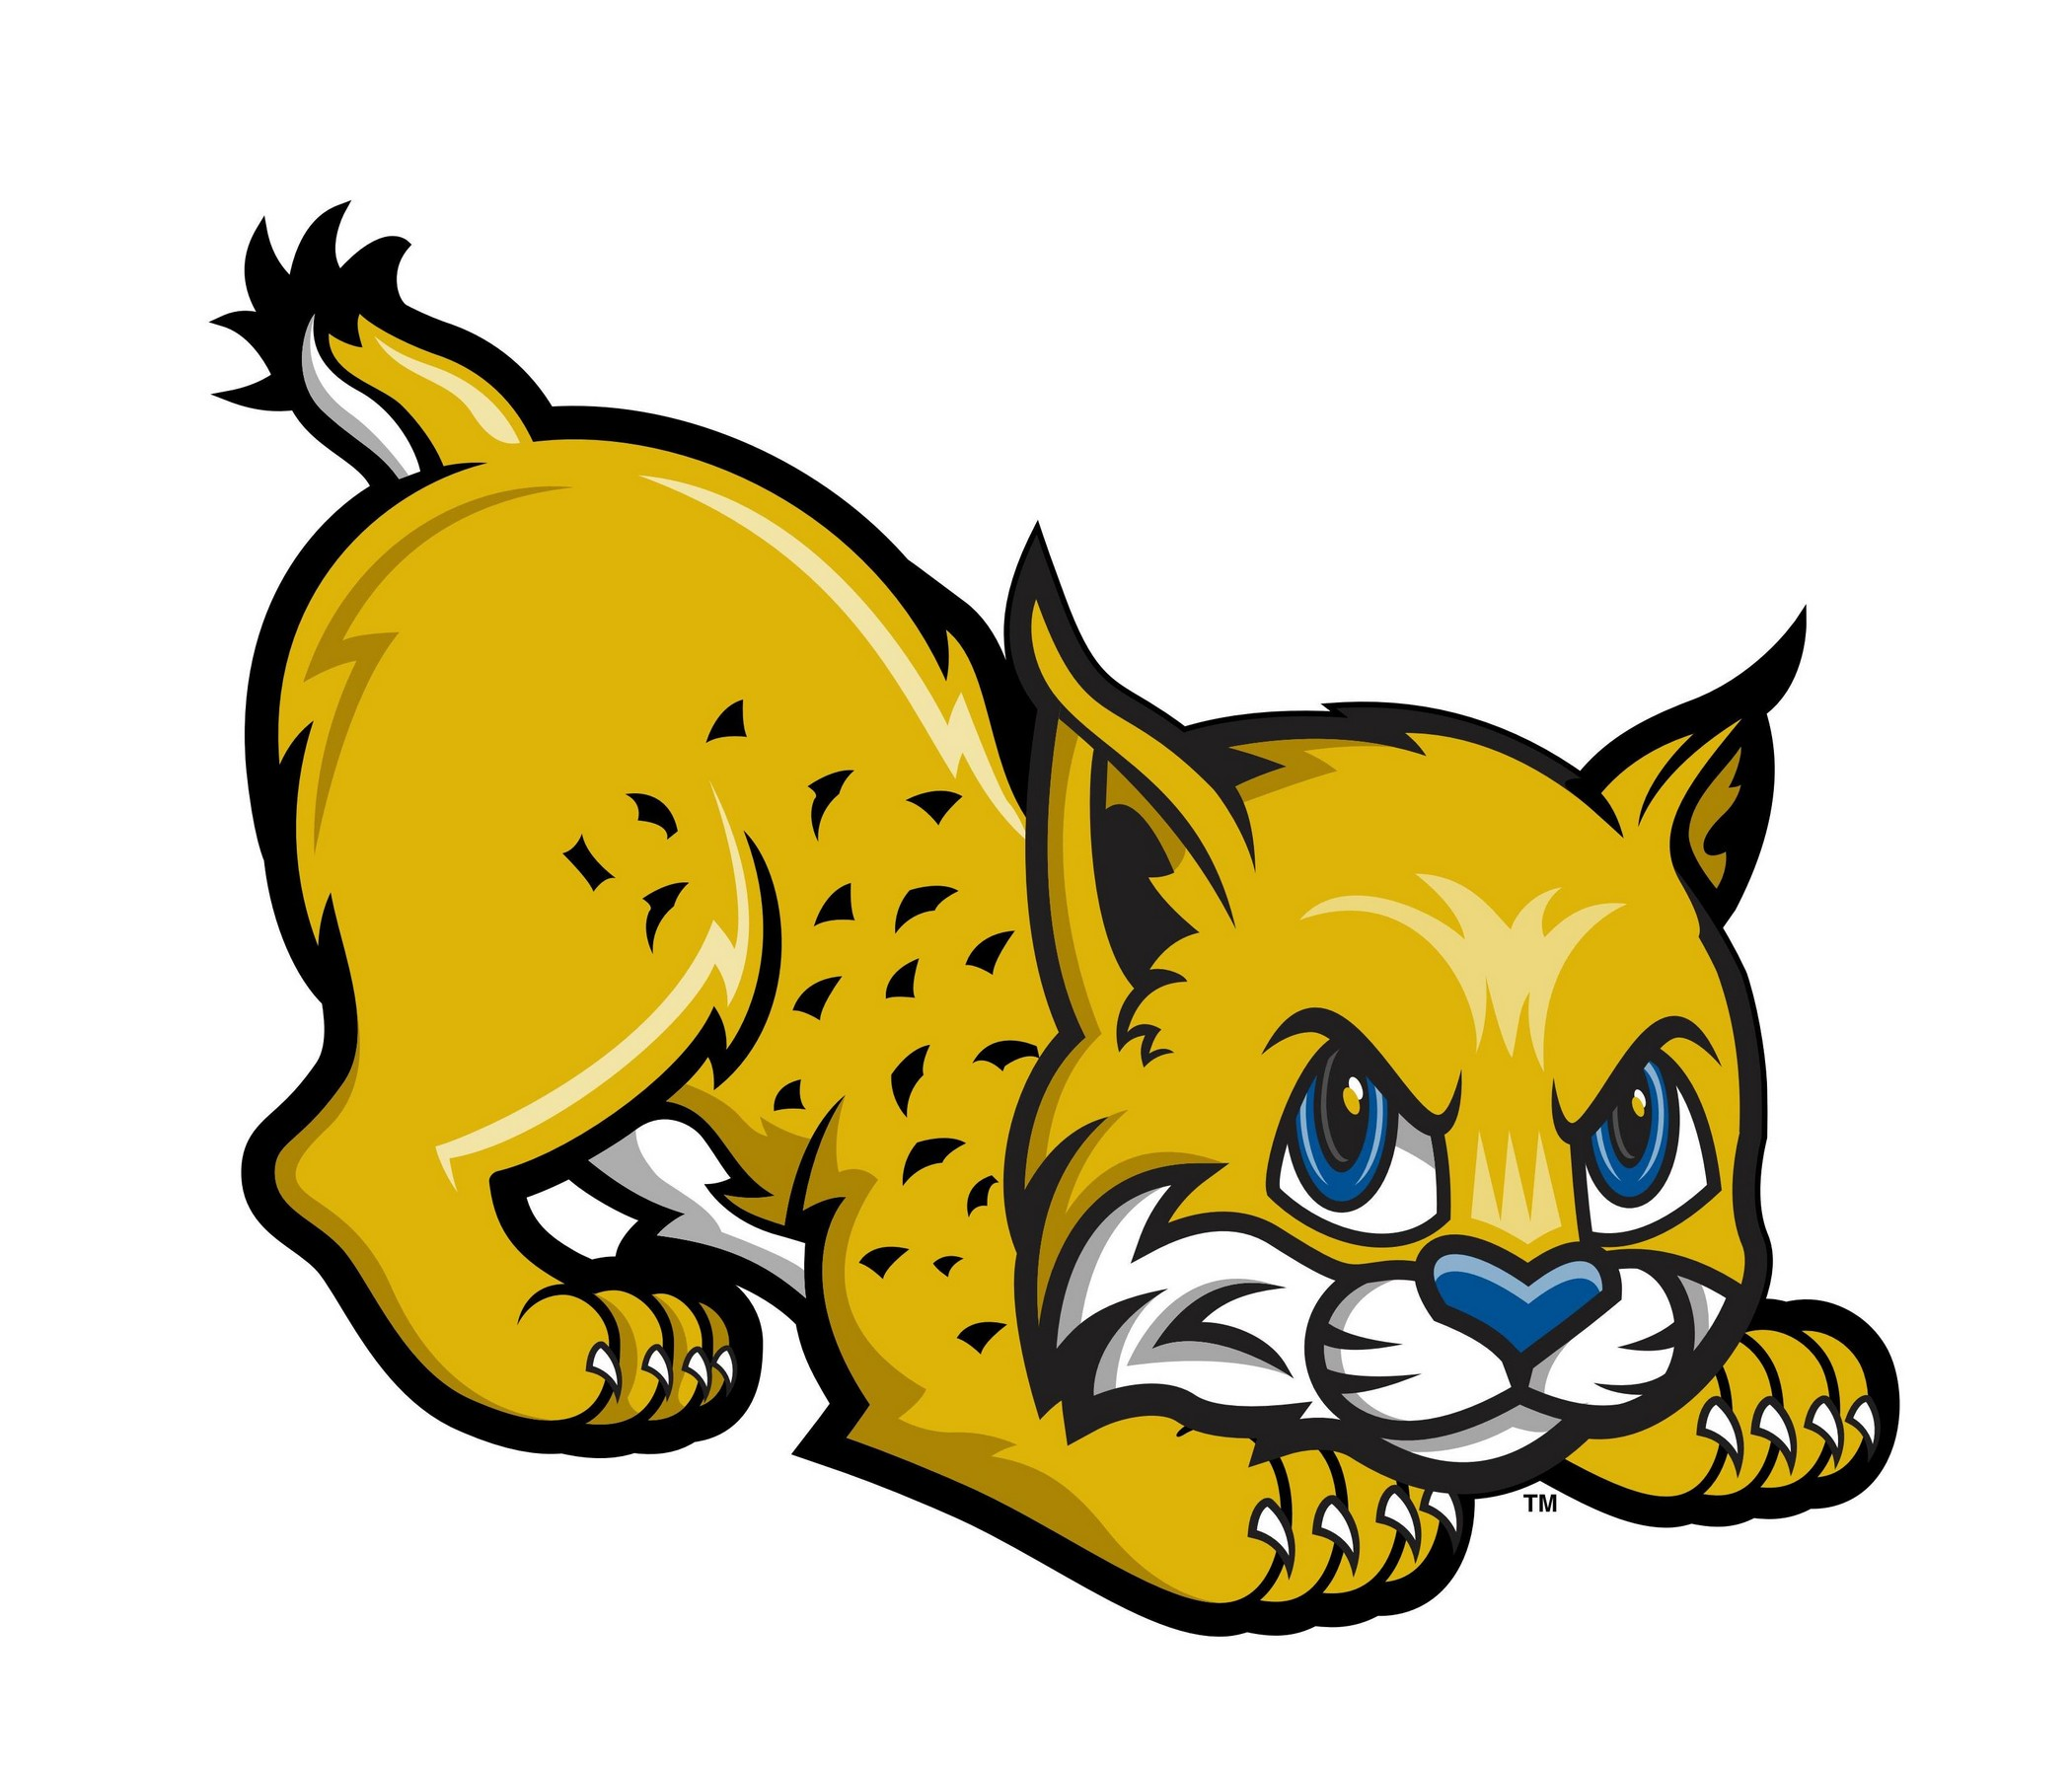 Image of Bobcat Clipart Bobcat Clipart-Image of Bobcat Clipart Bobcat Clipart-1